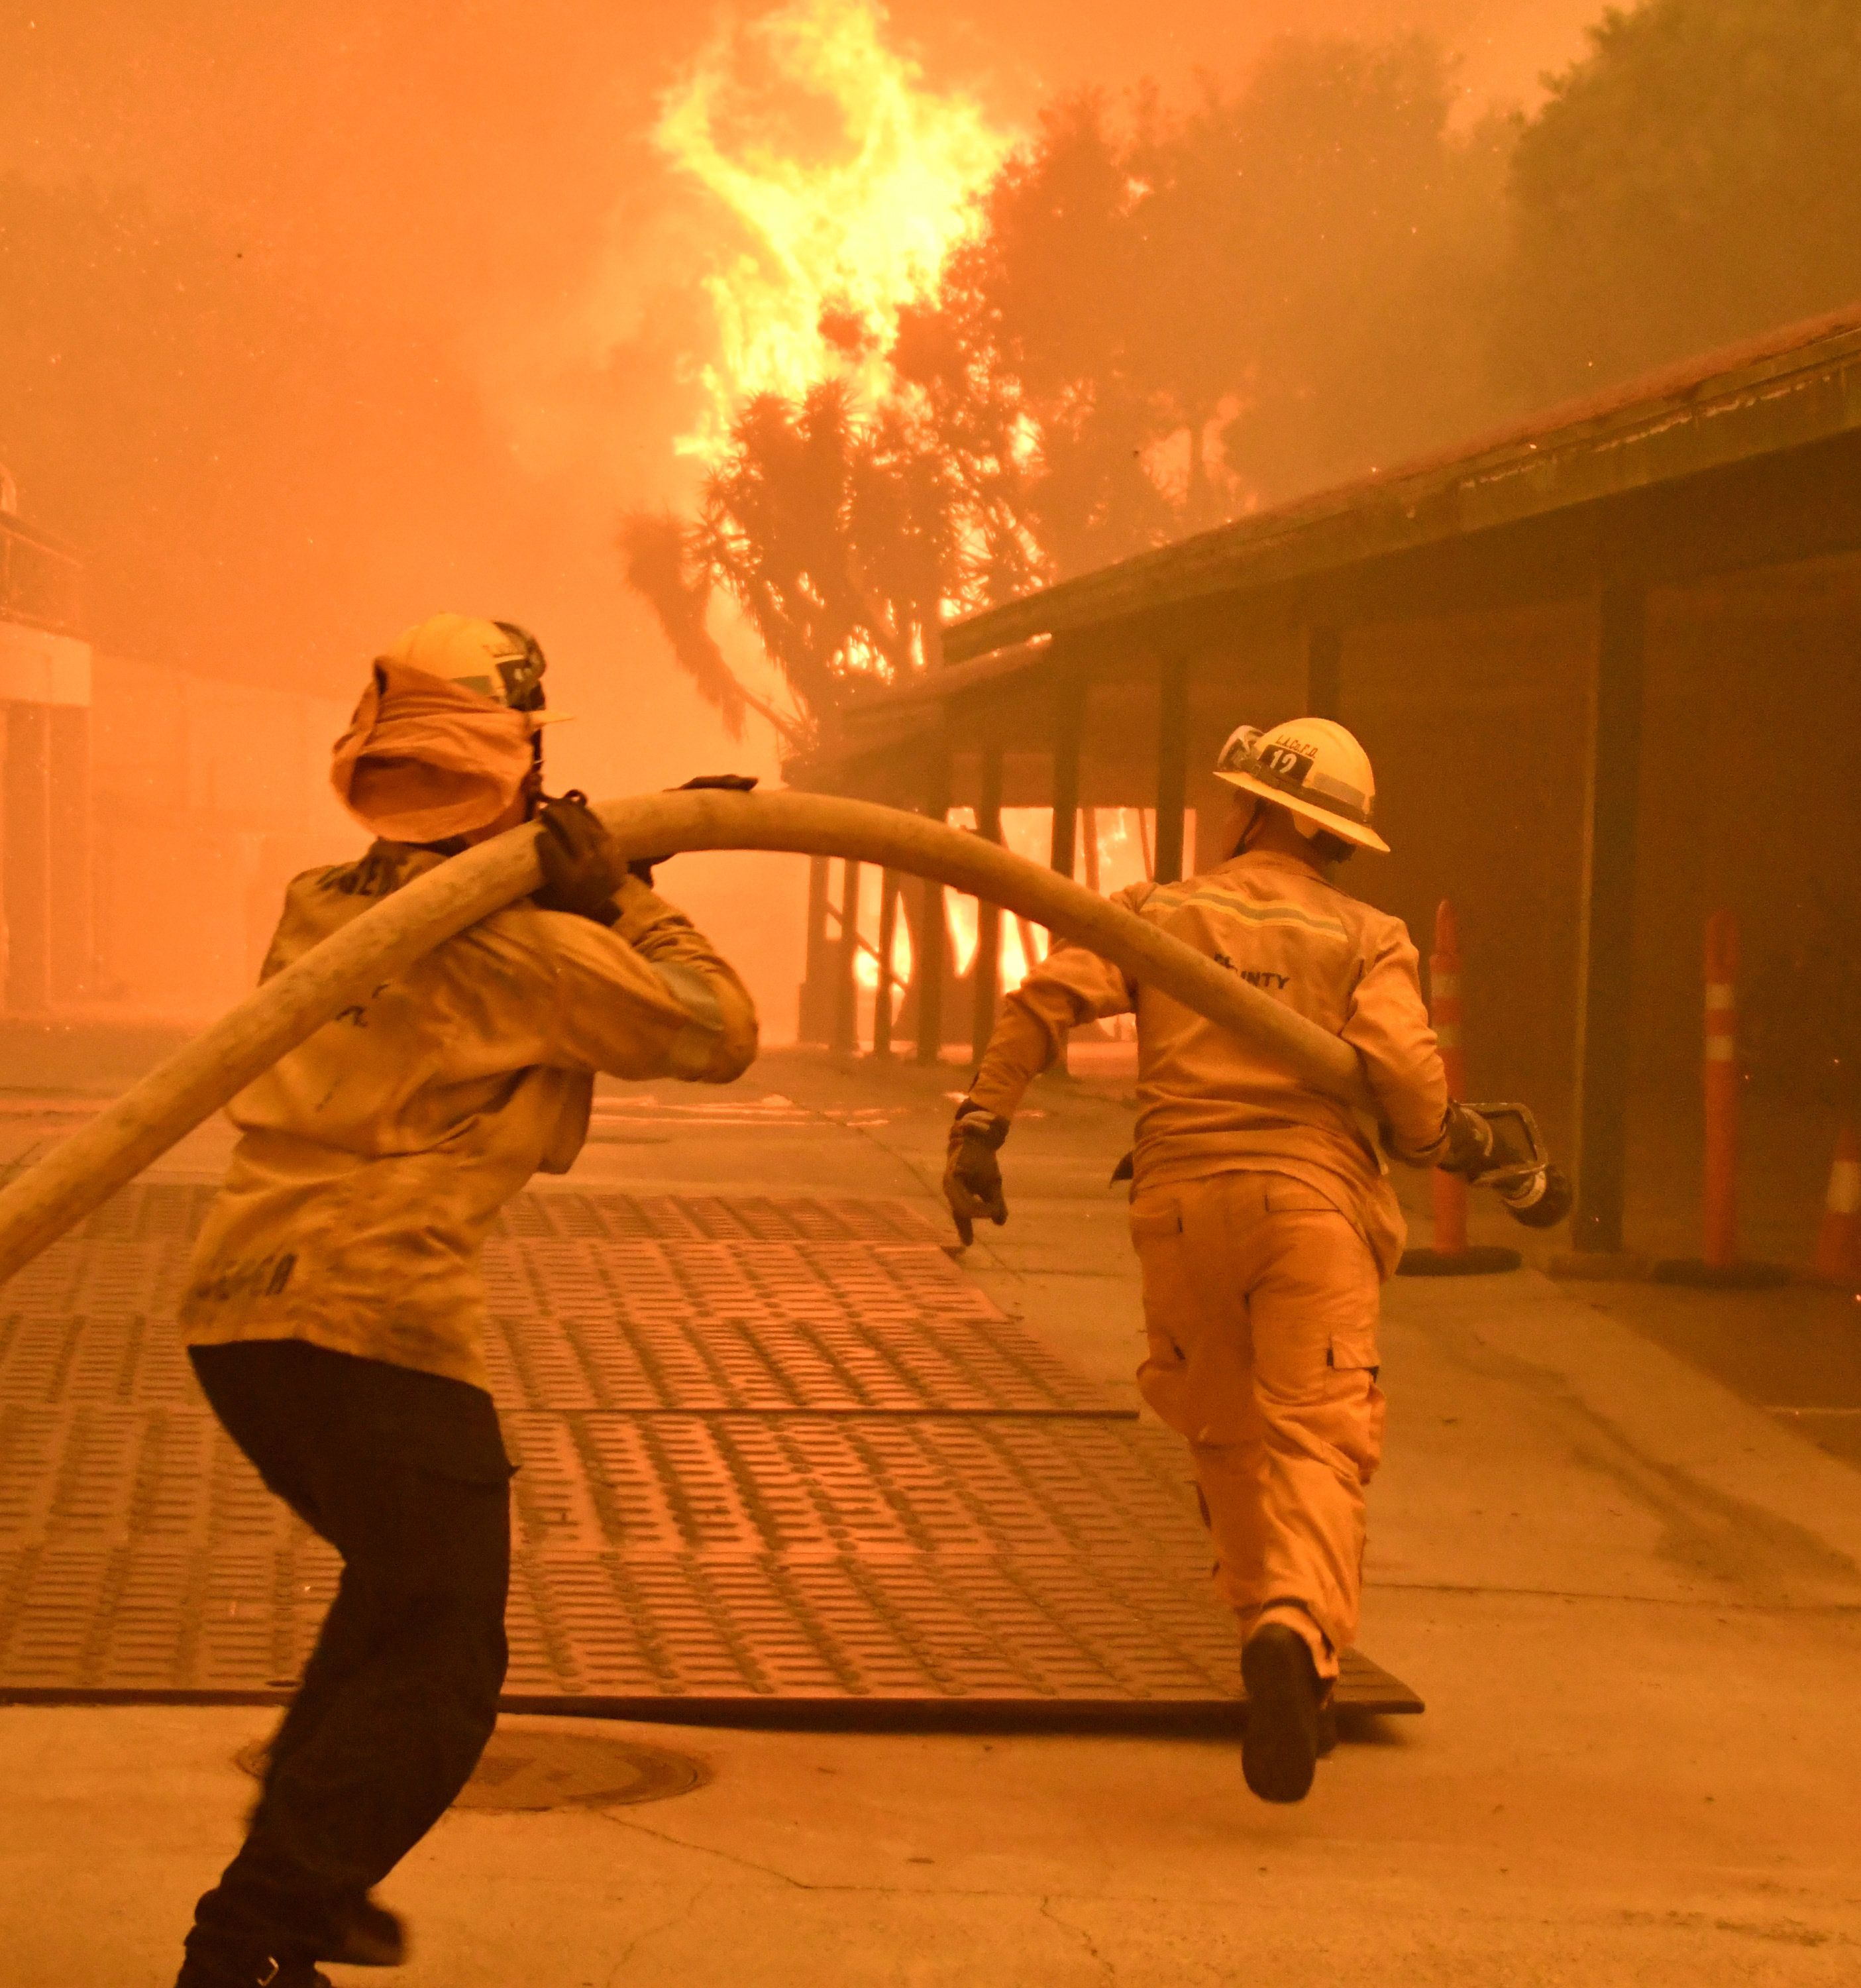 A condo unit goes up in fire from flying embers due to the Woolsey Fire, as firefighters prepare to hose down the flames, in Malibu, California, U.S. November 9, 2018. REUTERS/Gene Blevins - RC11DBC699C0